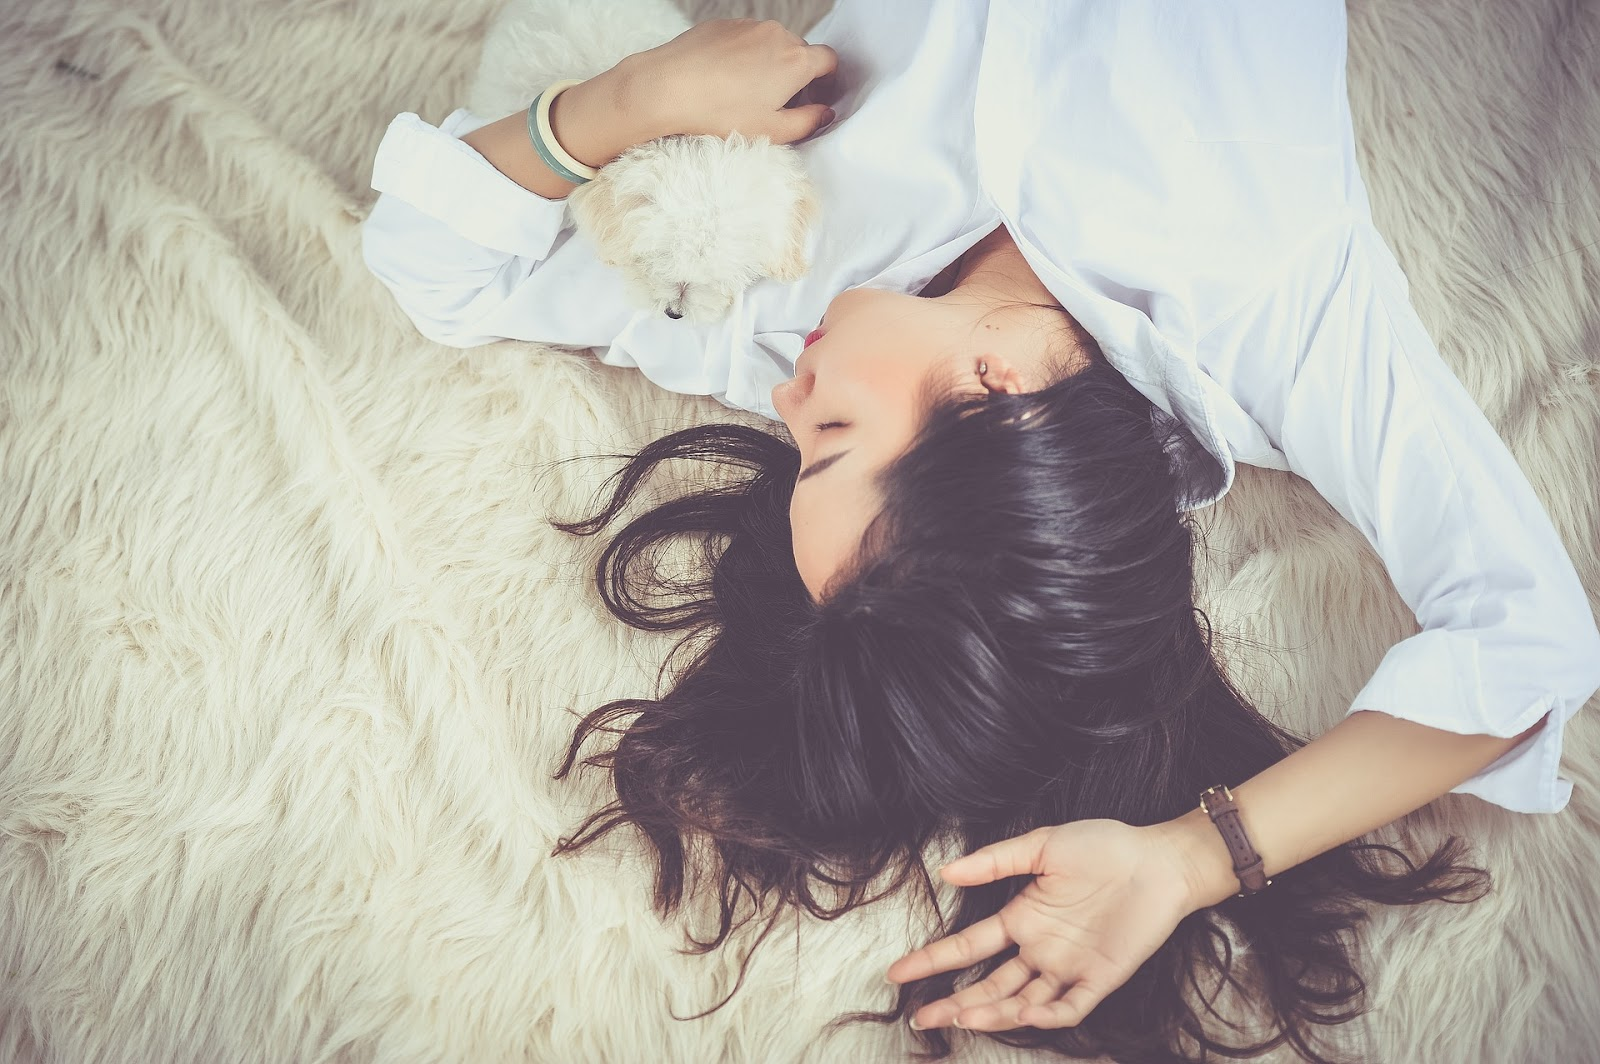 A girl lying down asleep while cuddling her dog